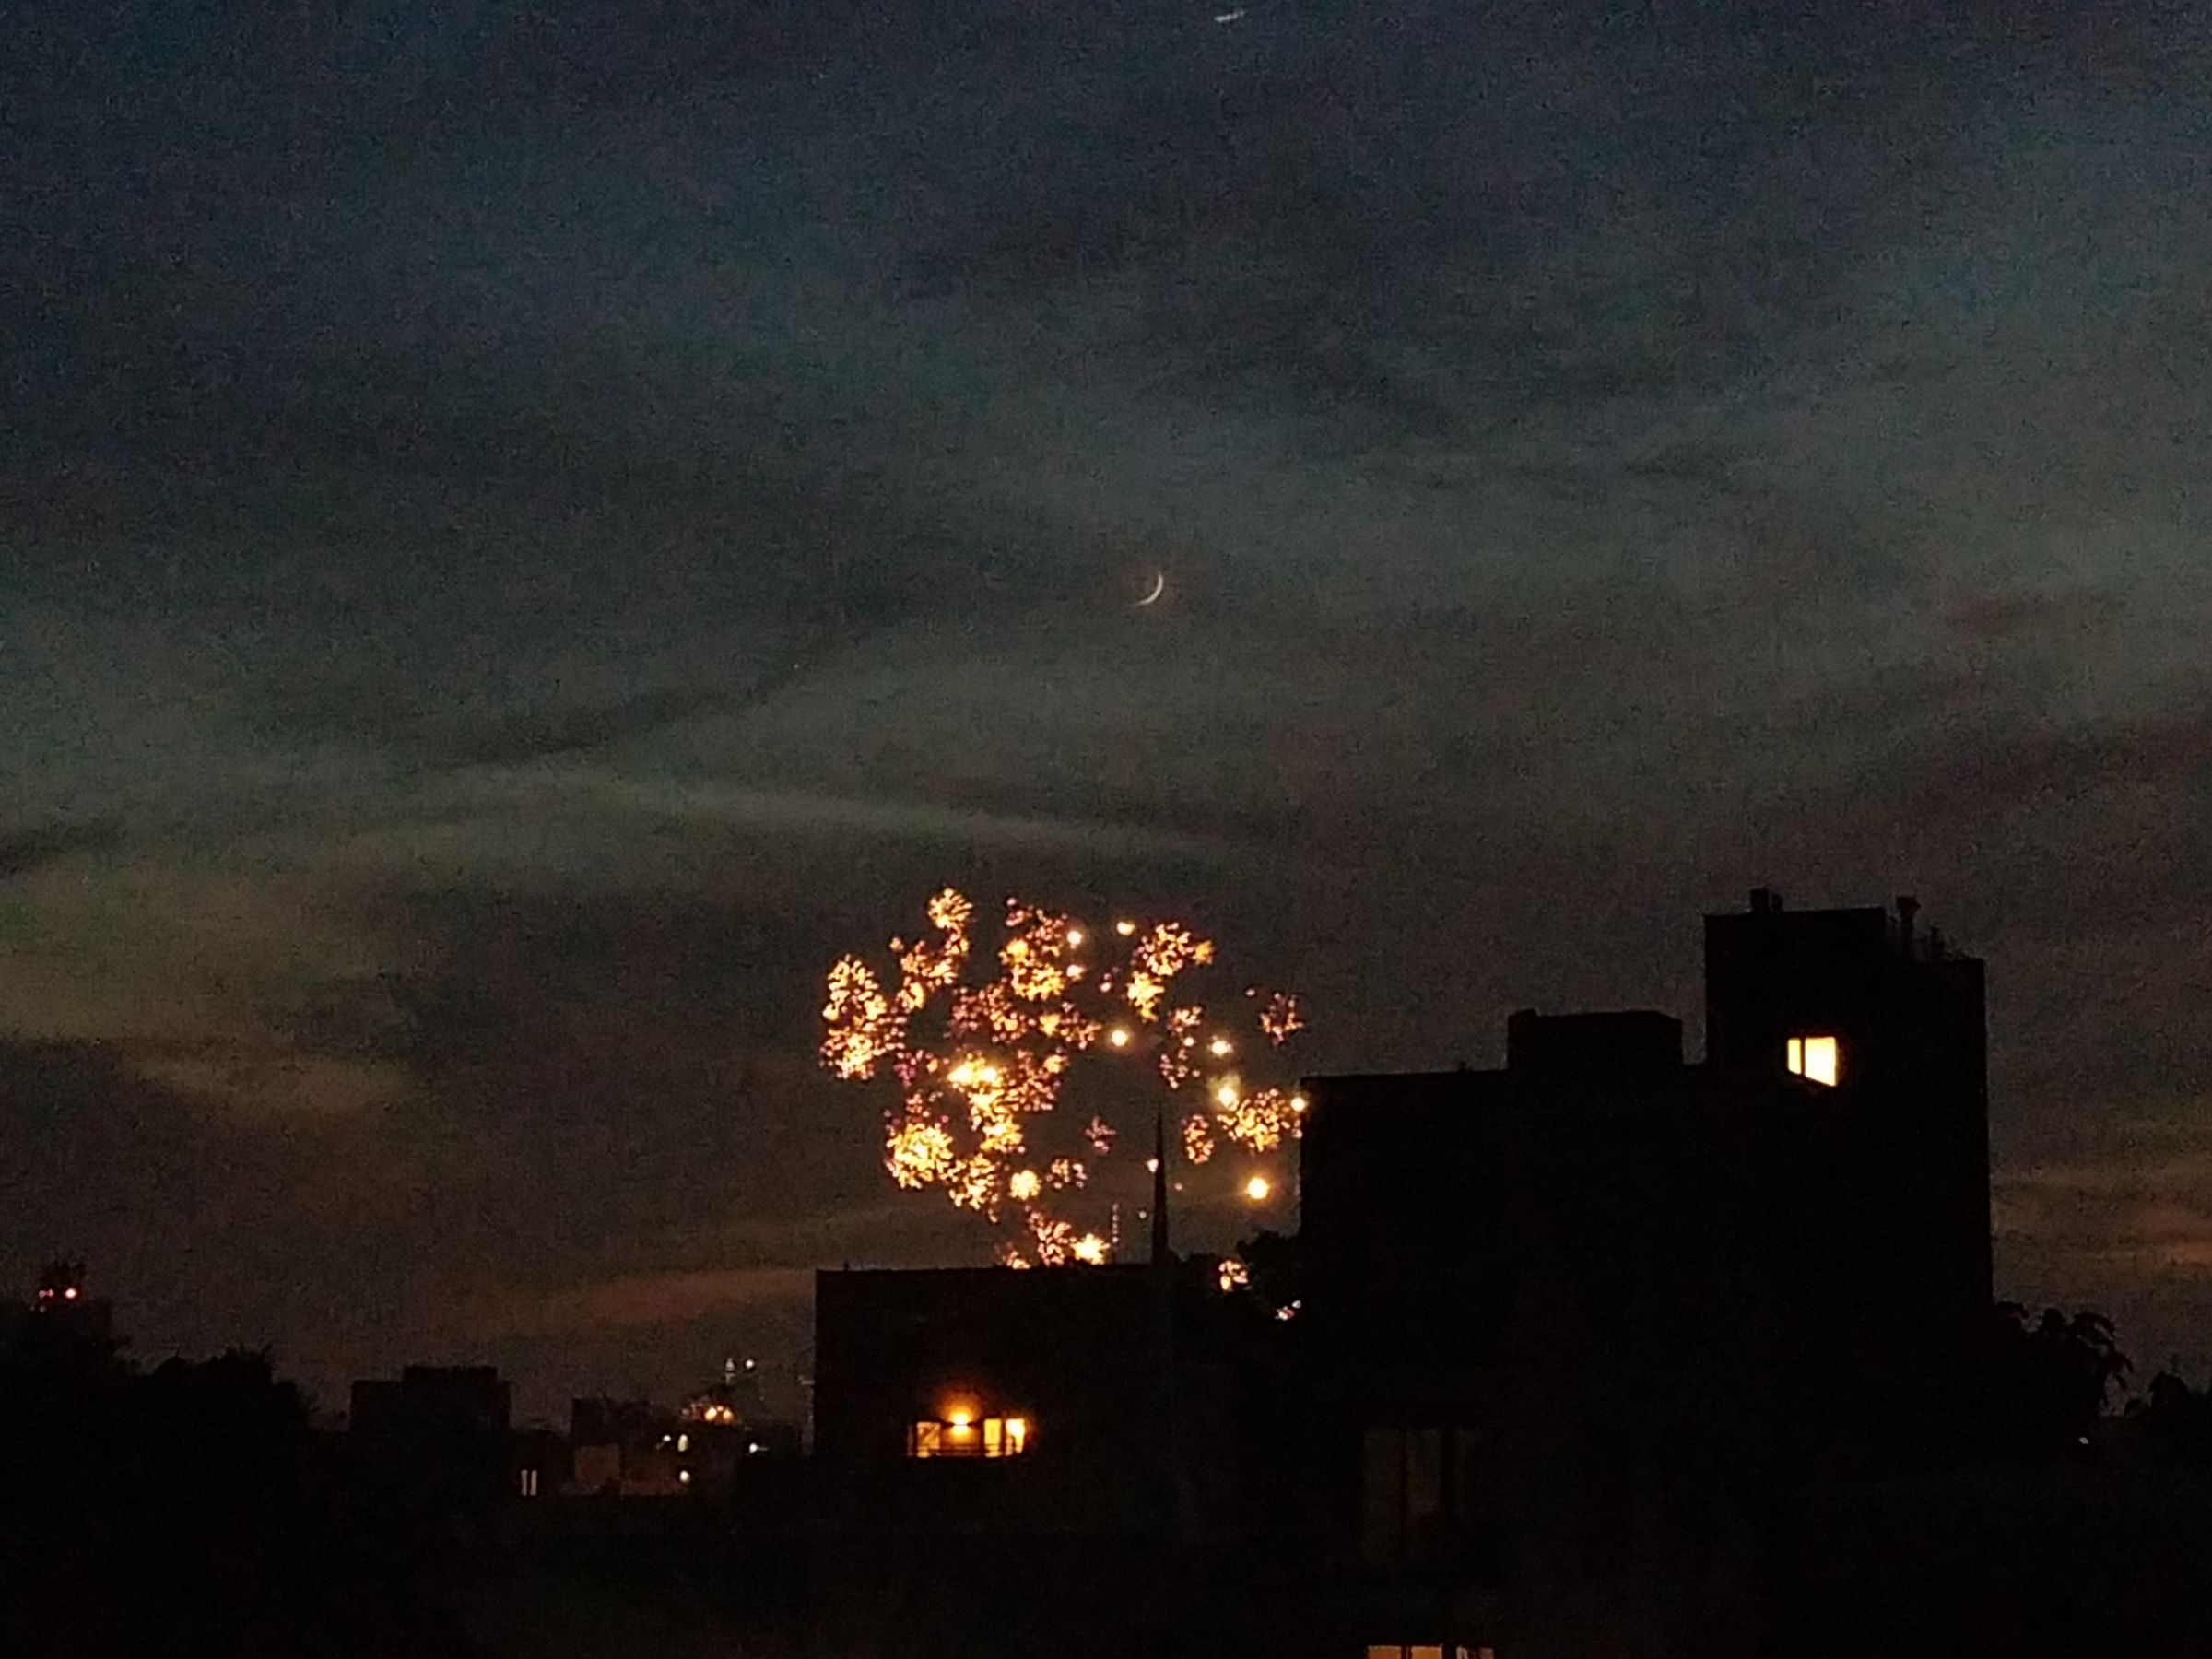 Photograph taken at night of a dark skyline barely visible against a cloudly night sky. The moon is barely crescent, and below it yellow fireworks explode.